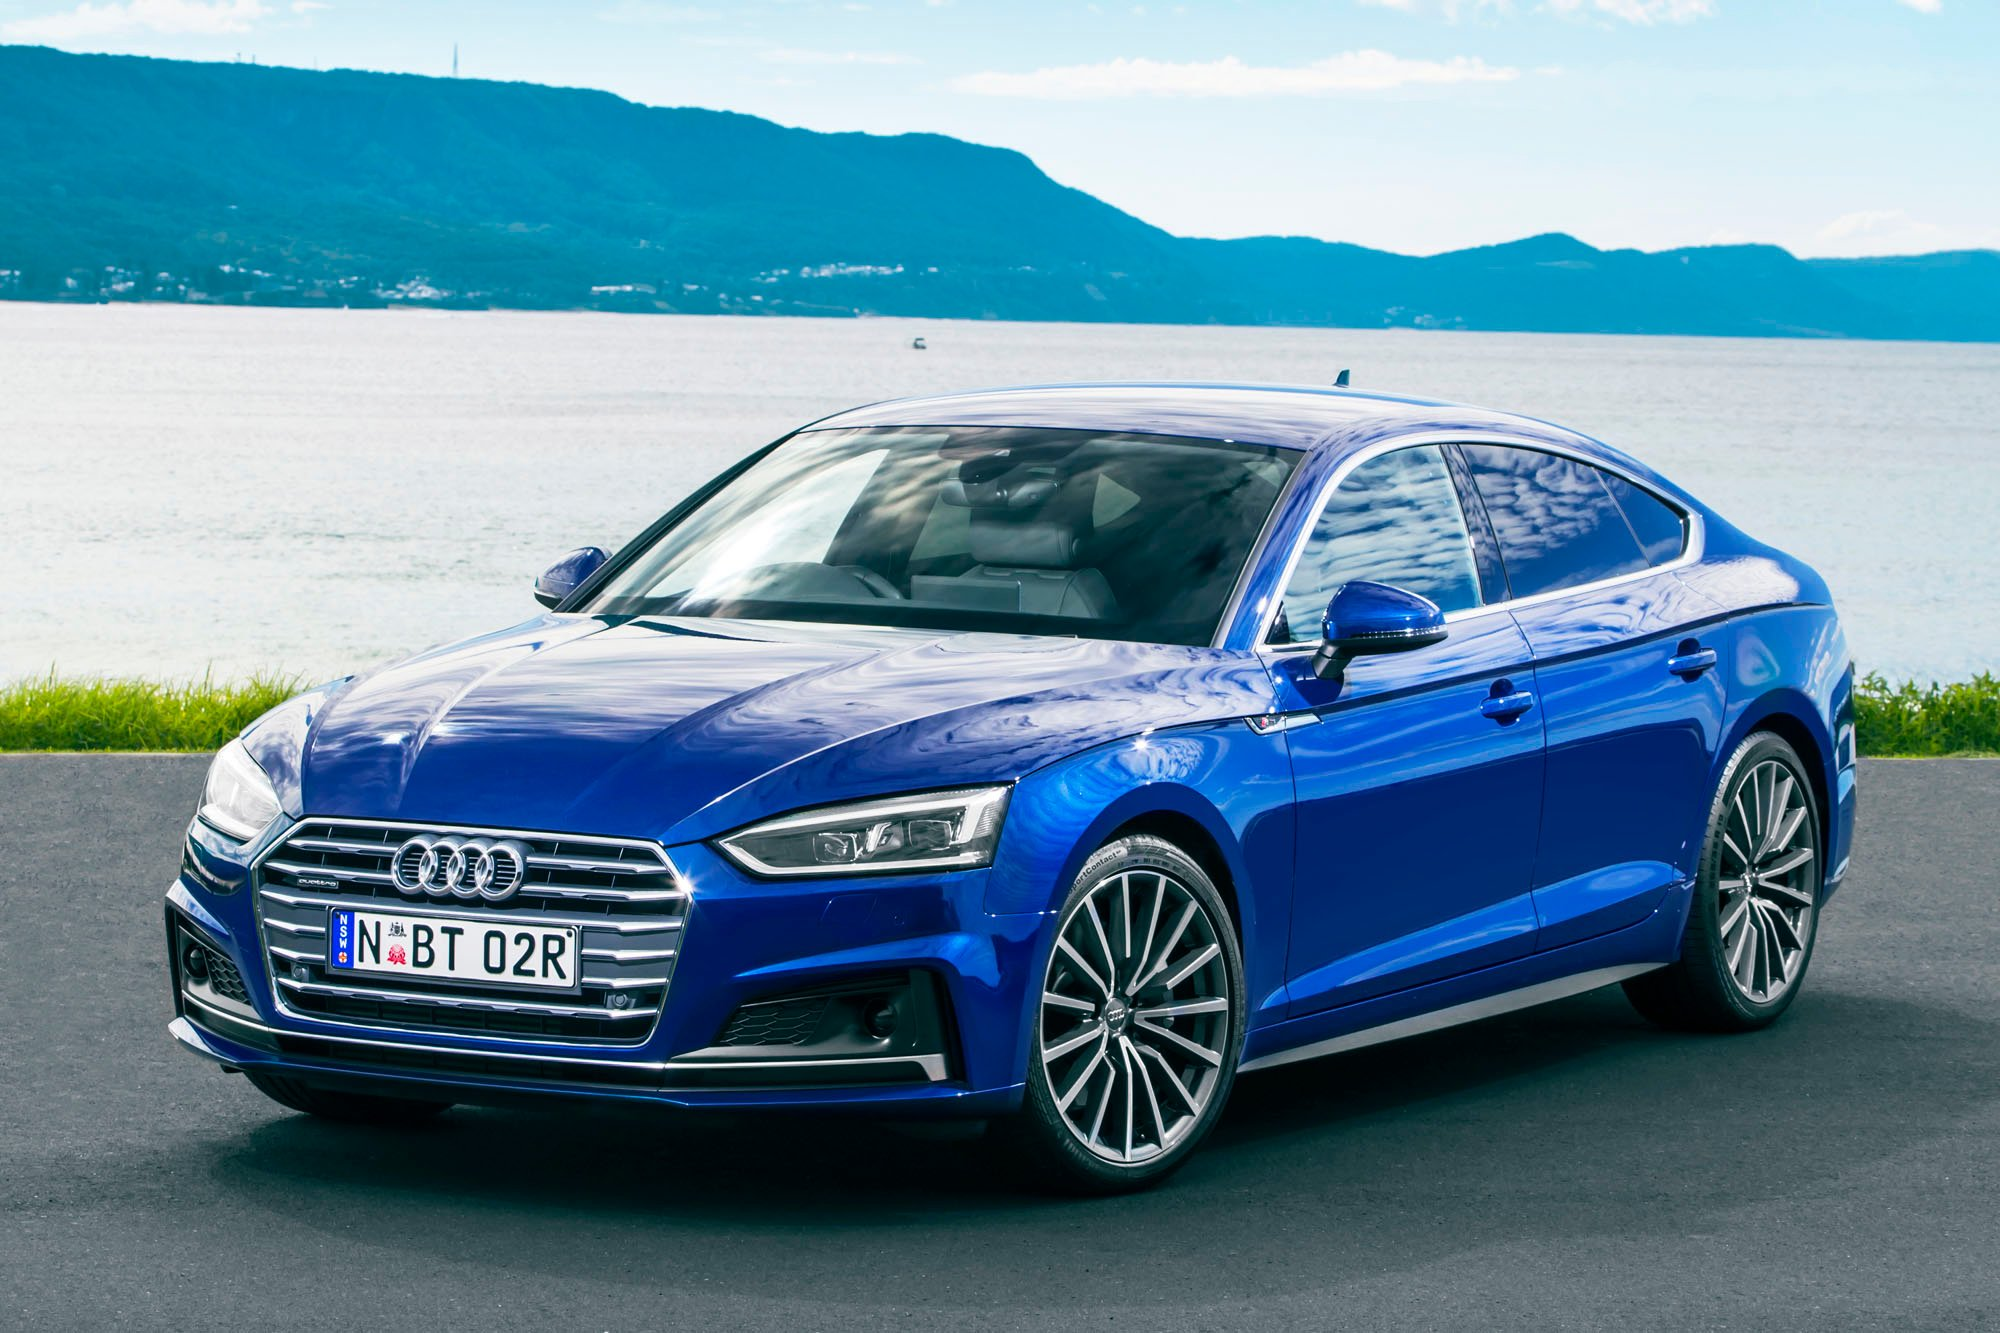 2017 audi a5 sportback s5 sportback pricing and specs new range brings faster hero model. Black Bedroom Furniture Sets. Home Design Ideas